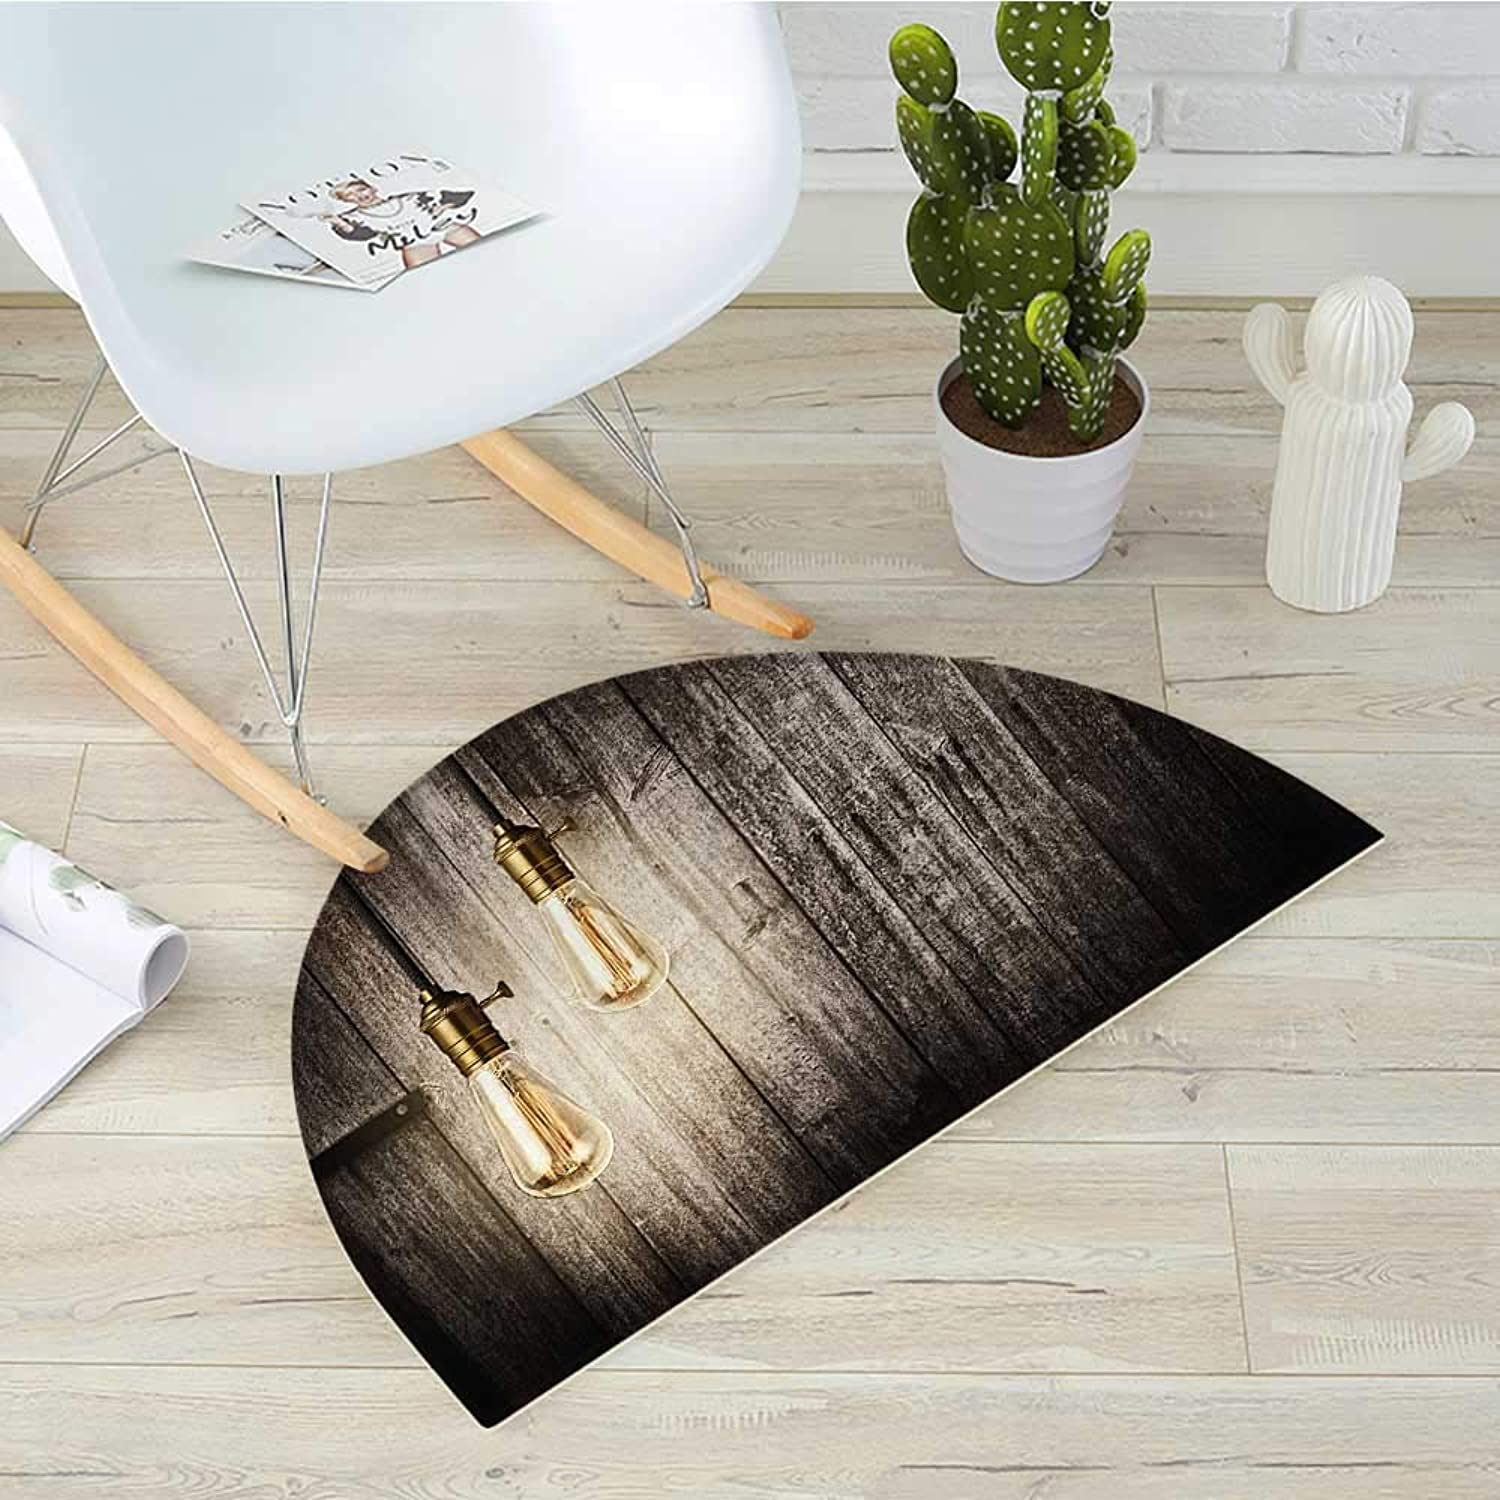 Industrial Half Round Door mats Historical Innovation Edison Revival Retro Electricity Wooden Planks Bathroom Mat H 39.3  xD 59  Pale Yellow Brown